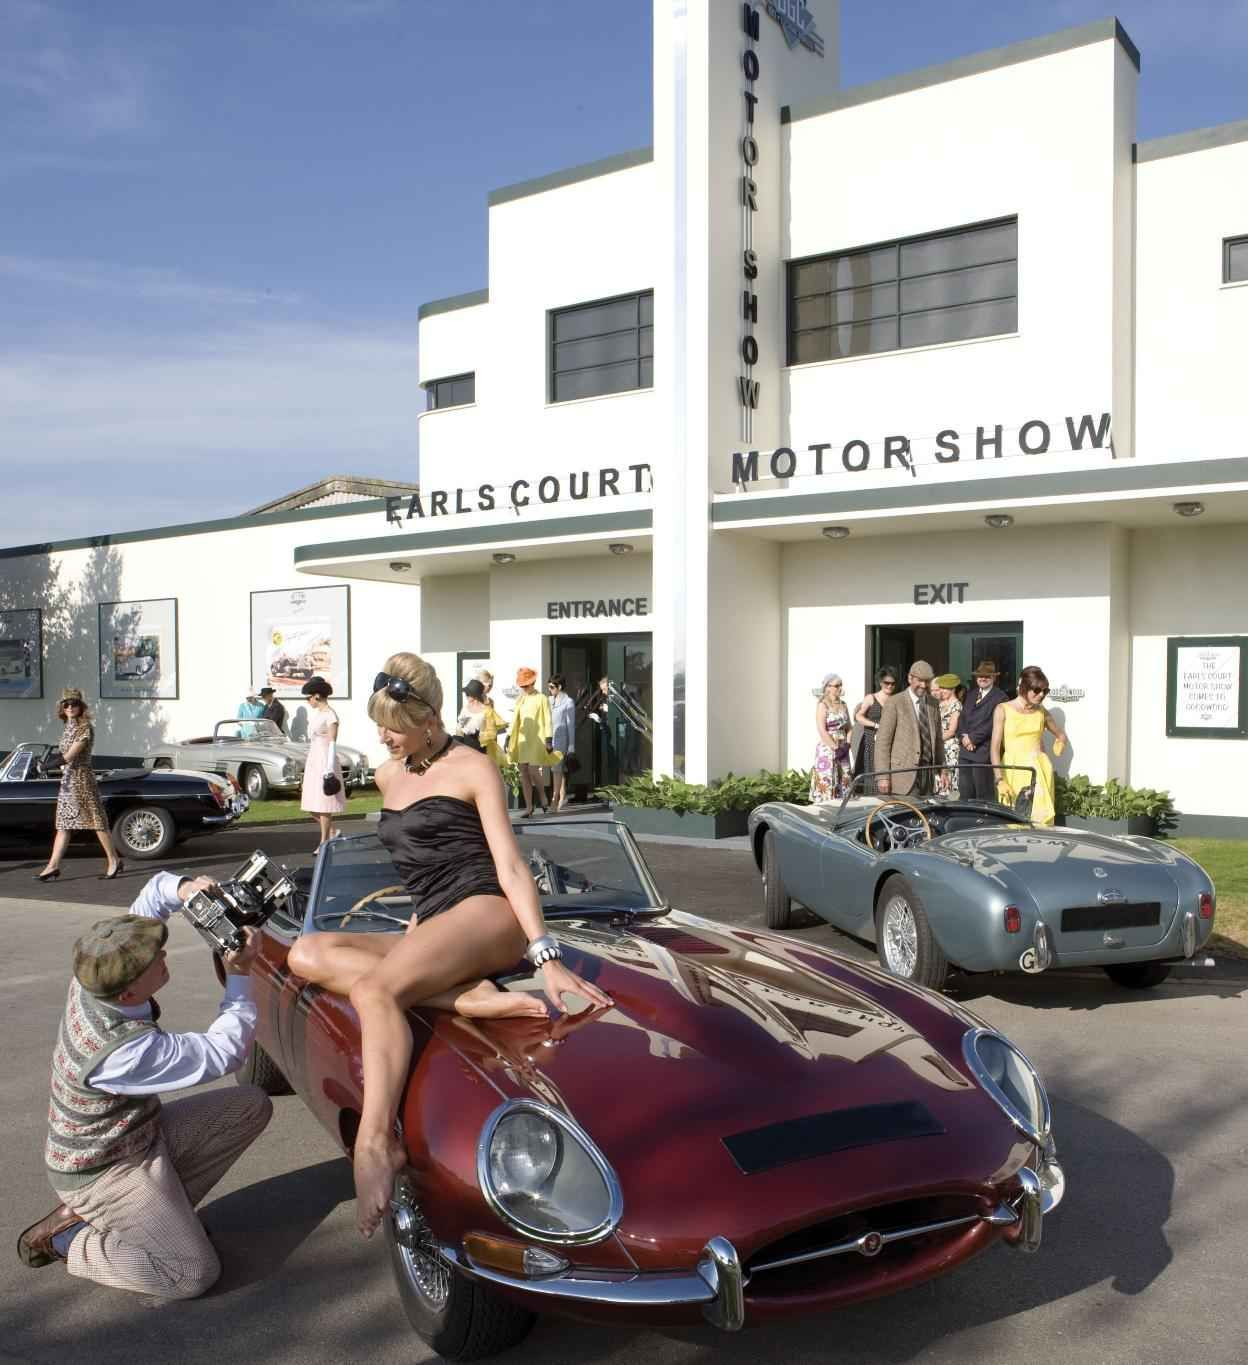 Two Beauties Caught In One Frame The Worlds Most Beautiful Cars To Star Earls Court Motor Show